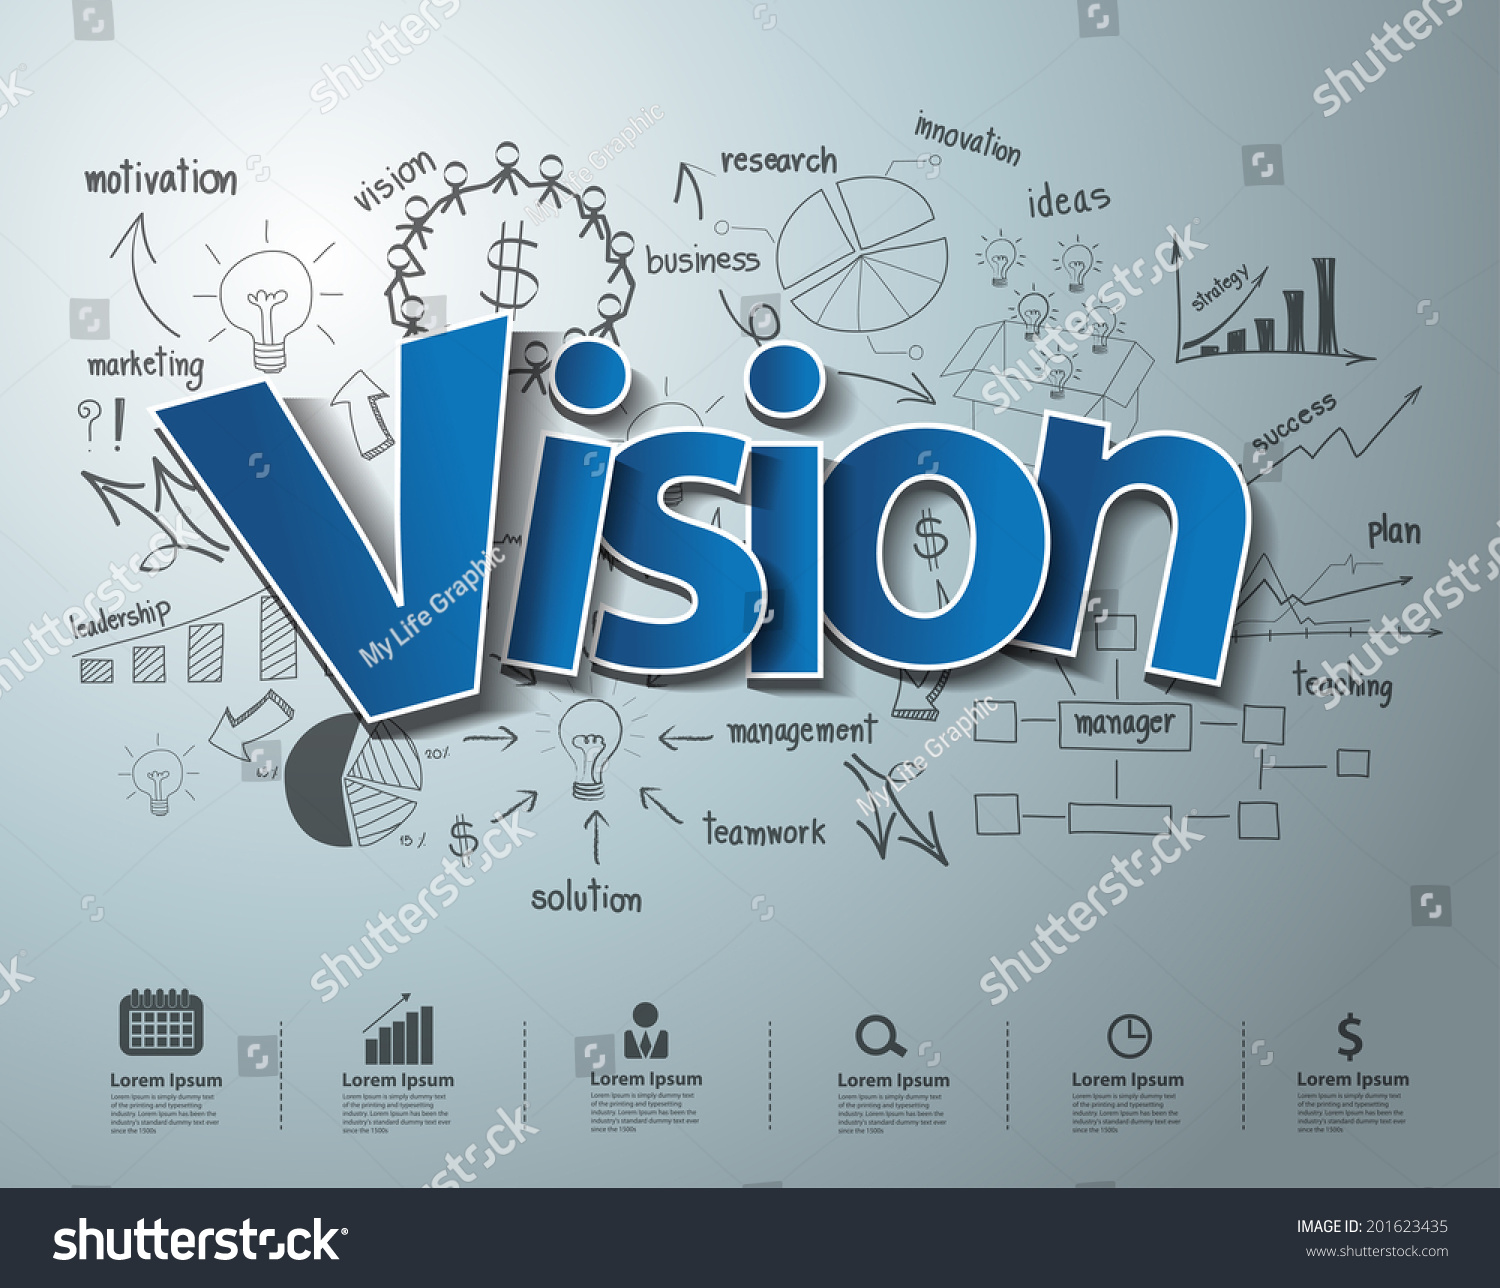 Royalty-free Vision text, With creative drawing… #201623435 Stock ...